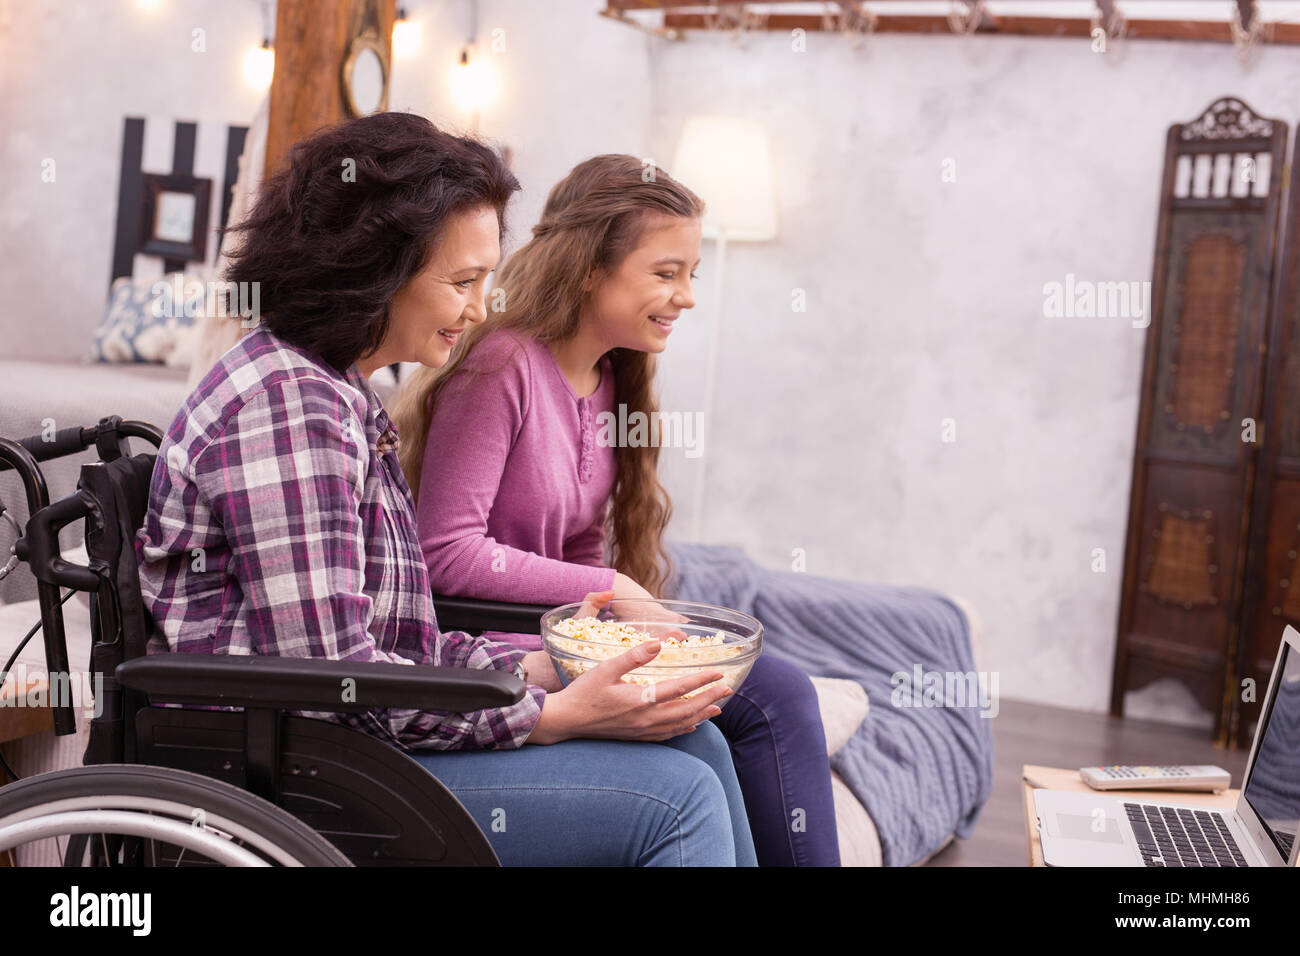 Positive incapacitated woman and girl seeing movie - Stock Image